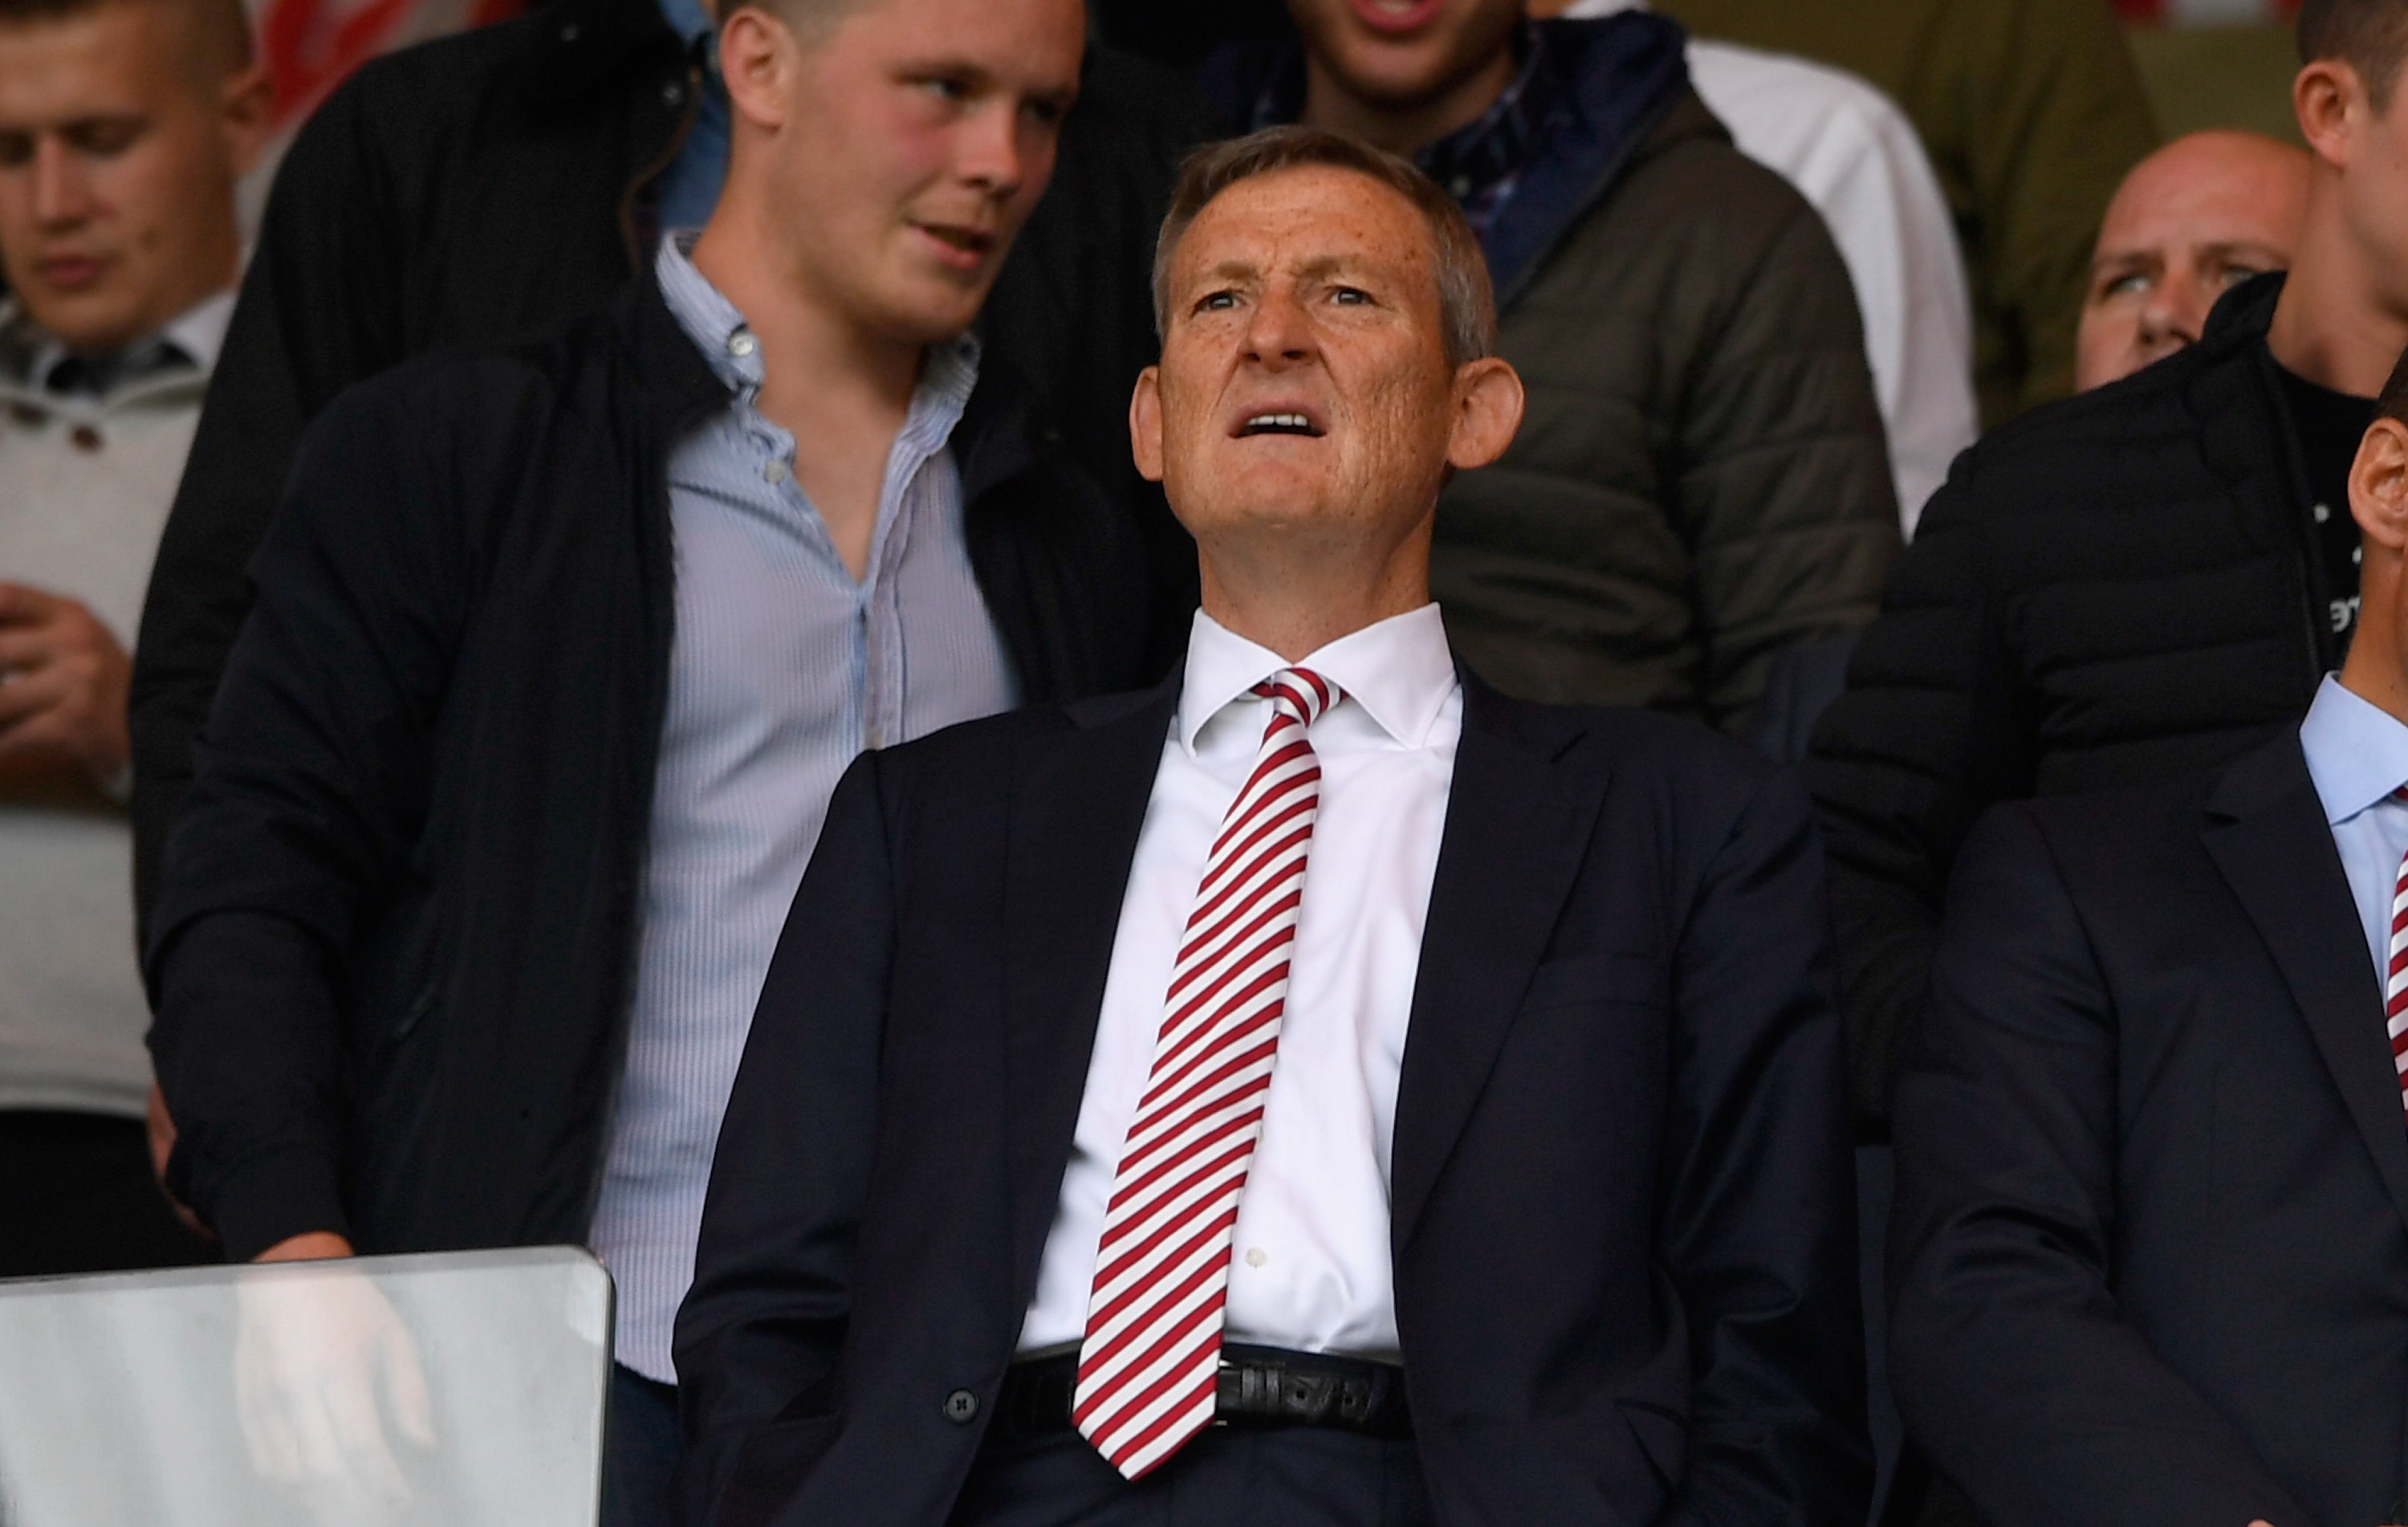 Sunderland owner Ellis Short ends attempt to sell club